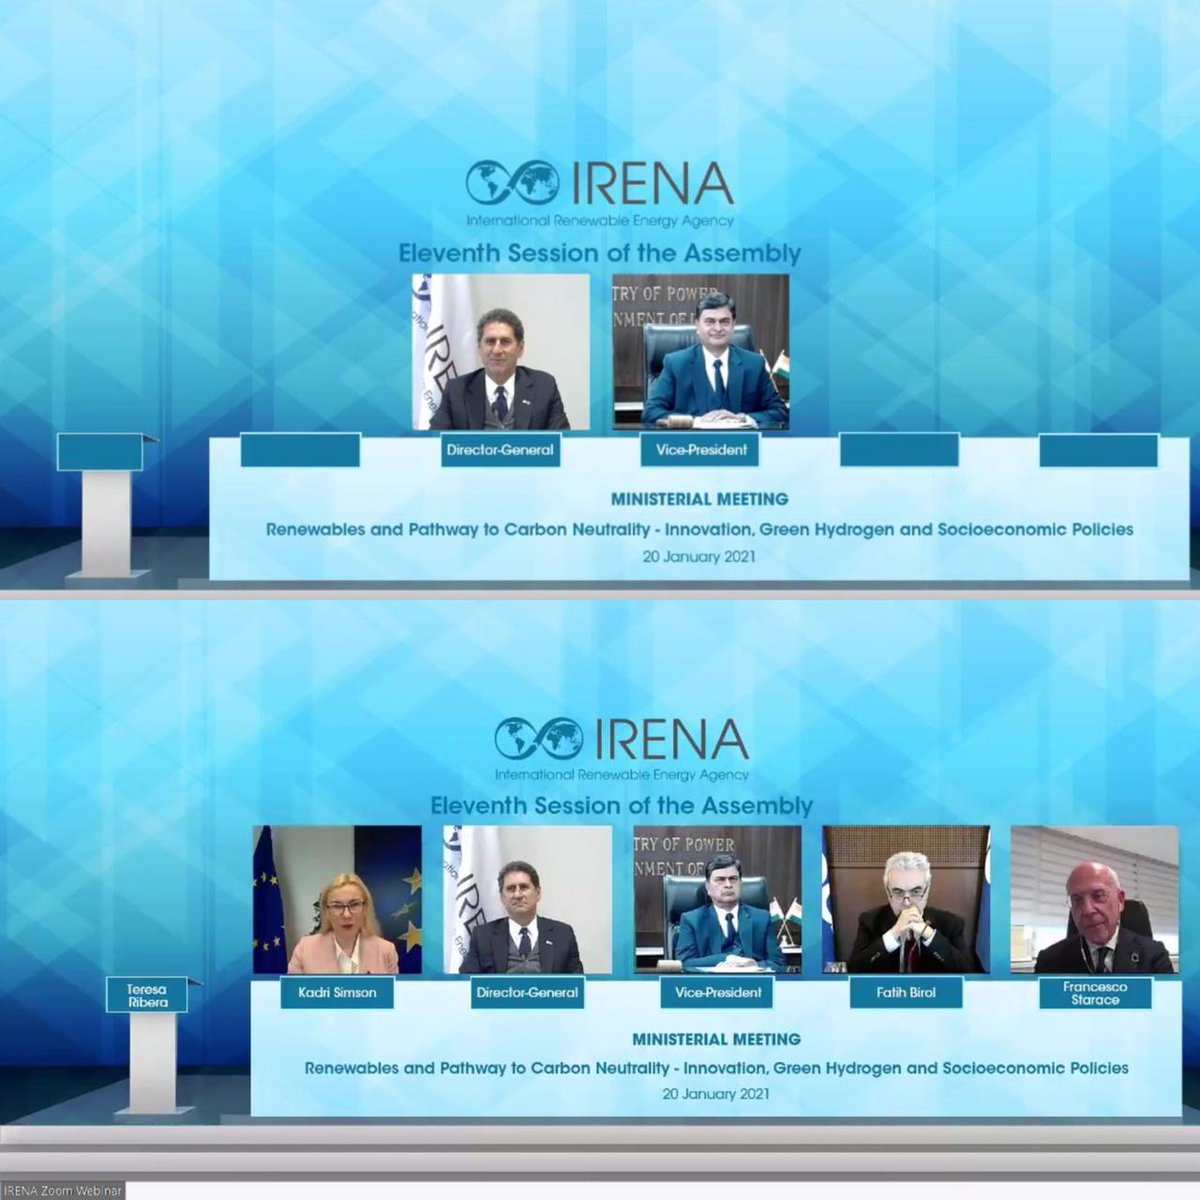 The Hon'ble Minister of State (IC) for Power and New & Renewable Energy, Shri R K Singh, chaired the Ministerial Plenary meeting on 'Renewables  and Pathway to Carbon Neutrality- Innovation, Green Hydrogen and Socioeconomic Policies' at the 11th Session of @IRENA Assembly today. https://t.co/oajKR8UMvH